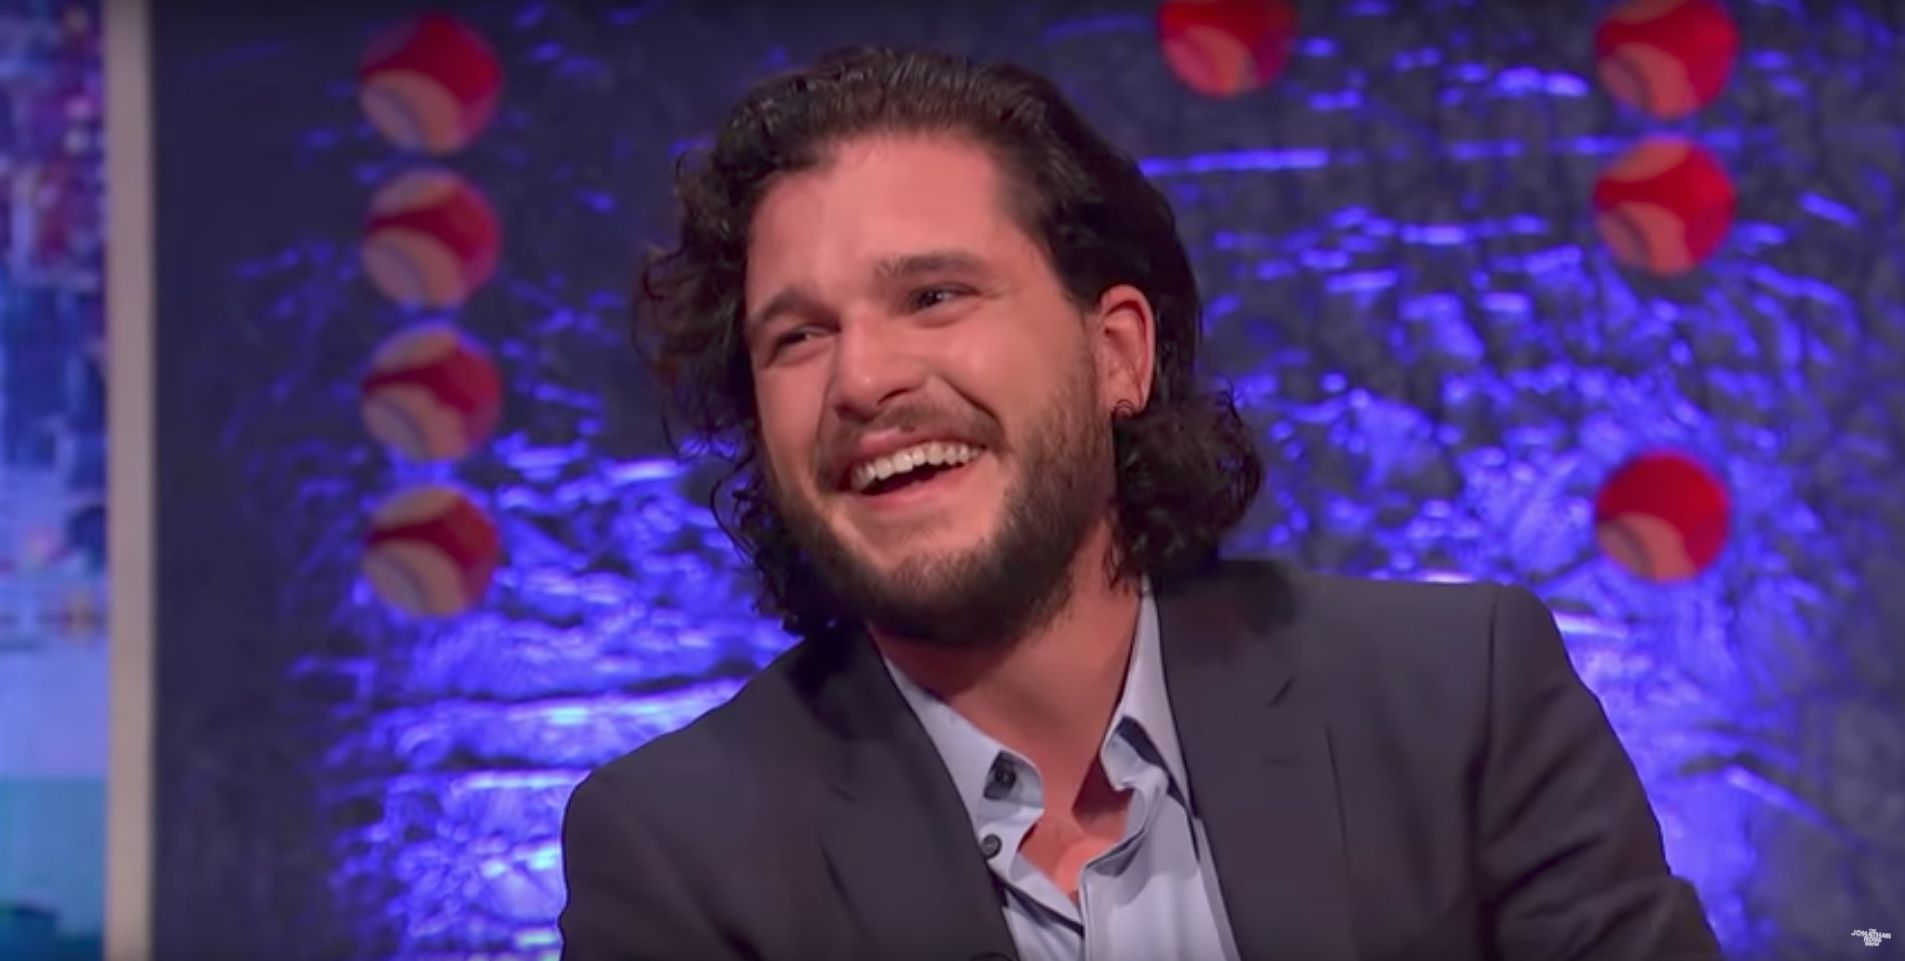 Someone thought it was funny: Kit Harington, who recently proposed to his former co-star, said he received a stern